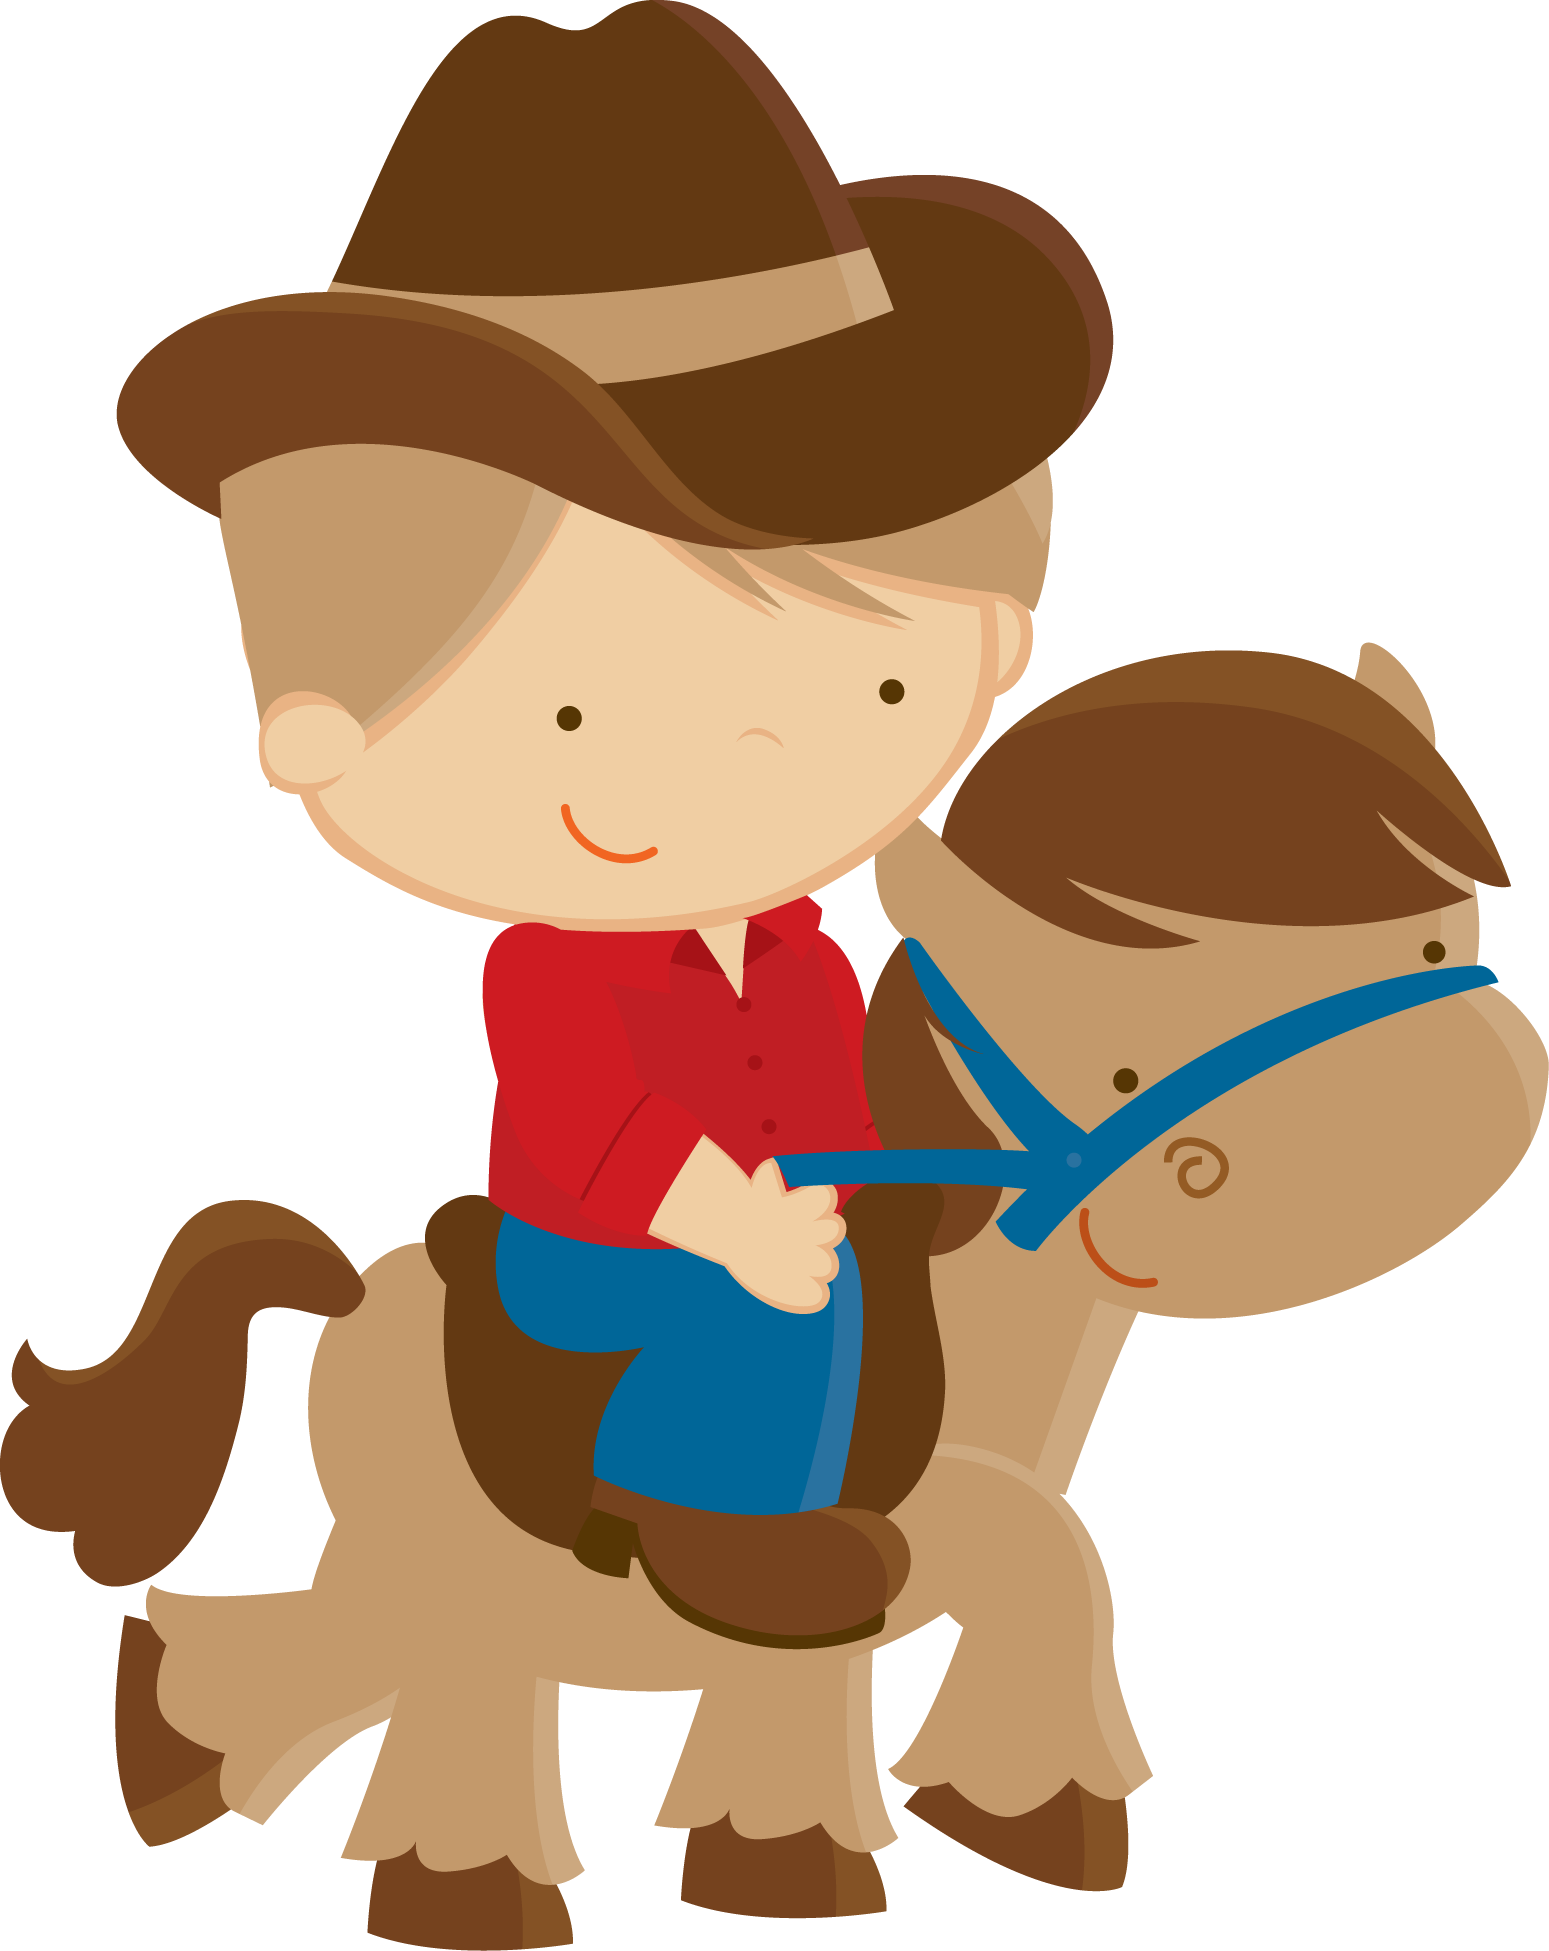 Zwd yellow hat png. Boys clipart cowboy